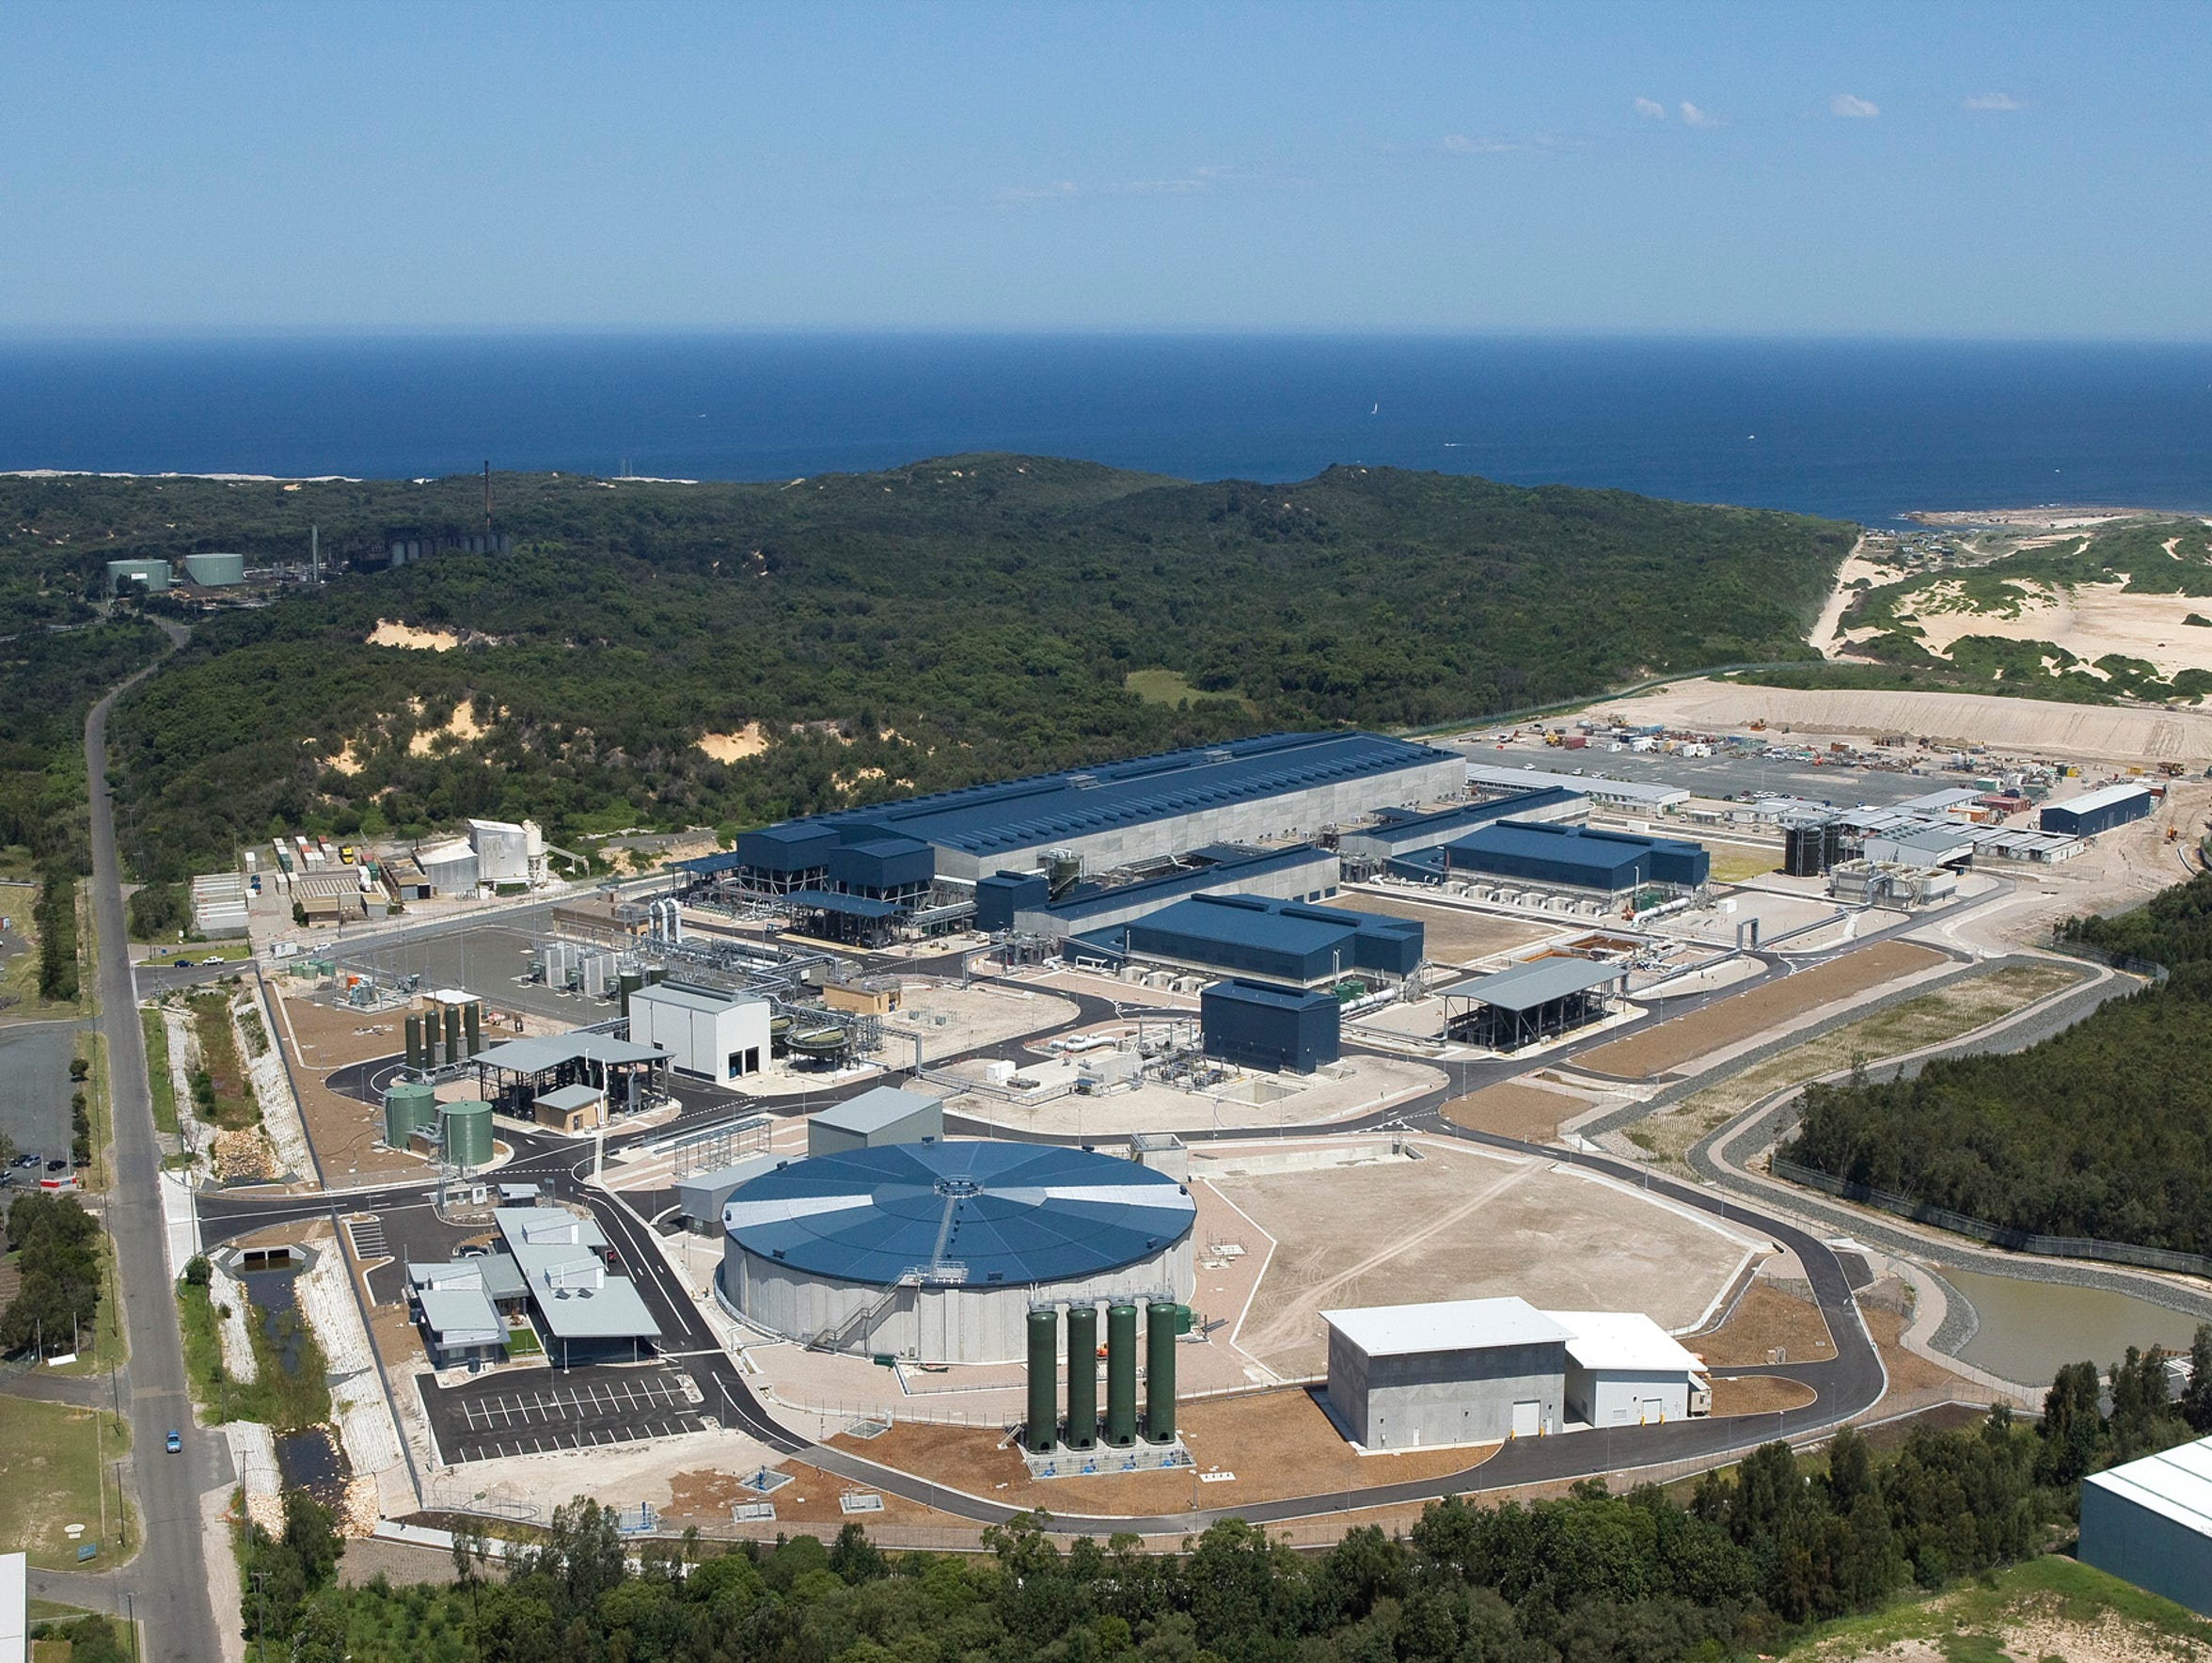 The Sydney desalination plant in Sydney, Australia.